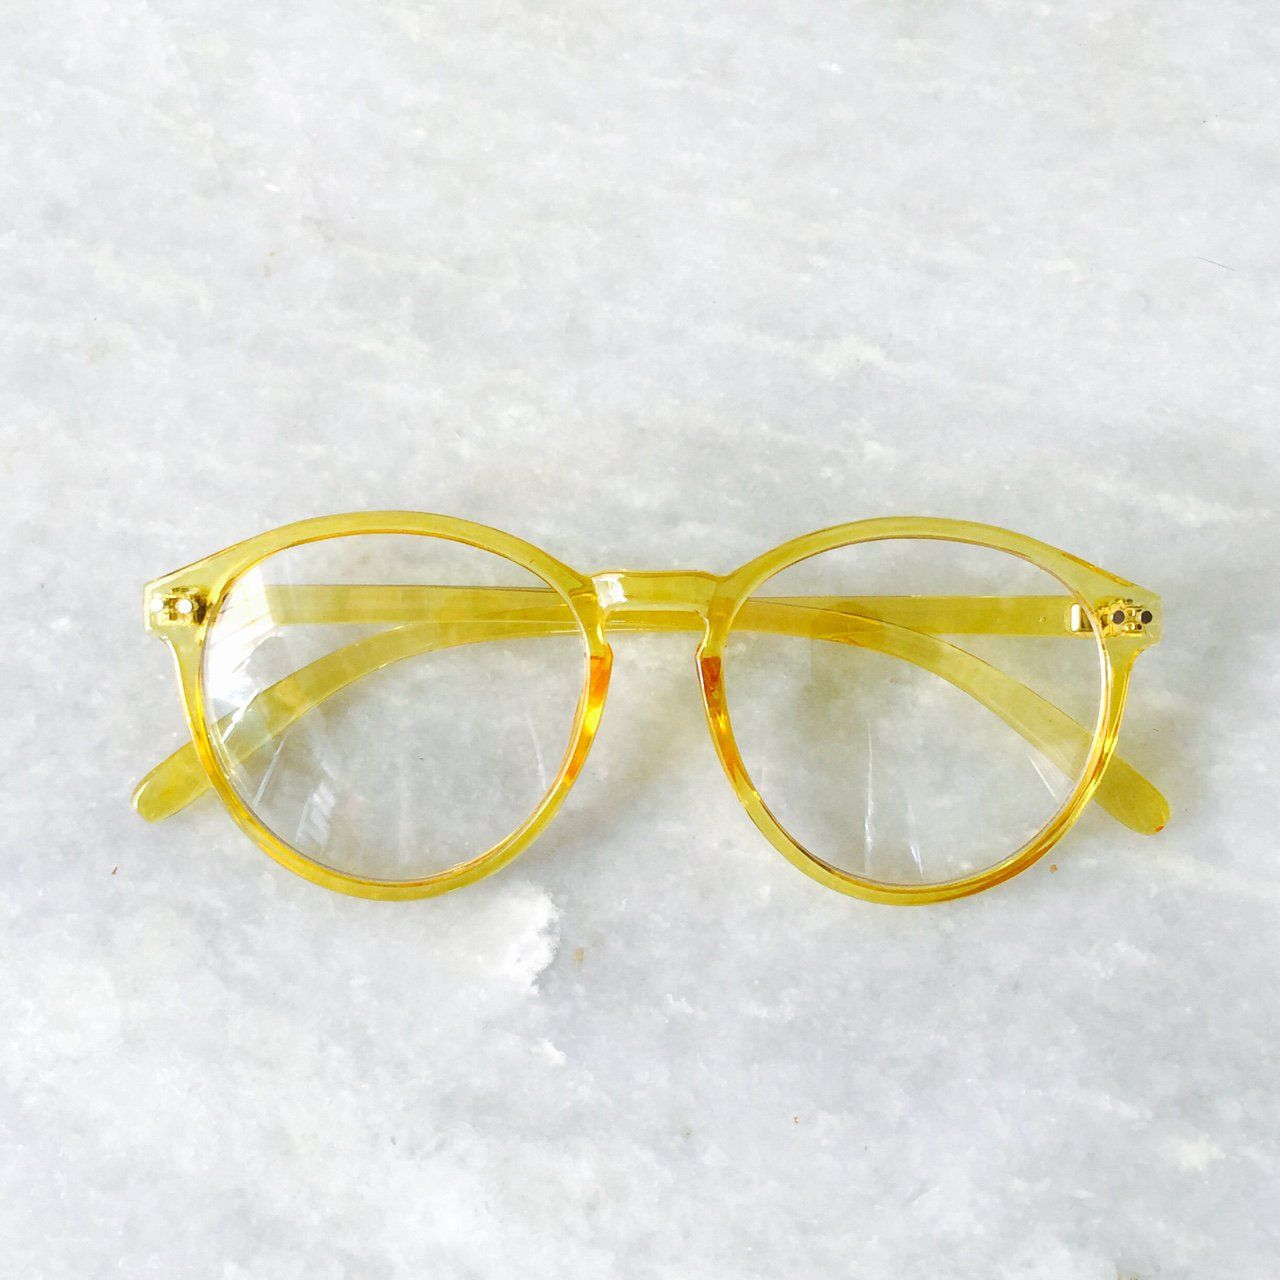 615f4bd971 Retro Yellow Pantos Frame Clear Lens Glasses ⌛ Yellow Frame • Pantos Style  • Replaceable Lens • Retro Fit • Denim shorts • Basic Tee • Vans Shoes •  SENT ...